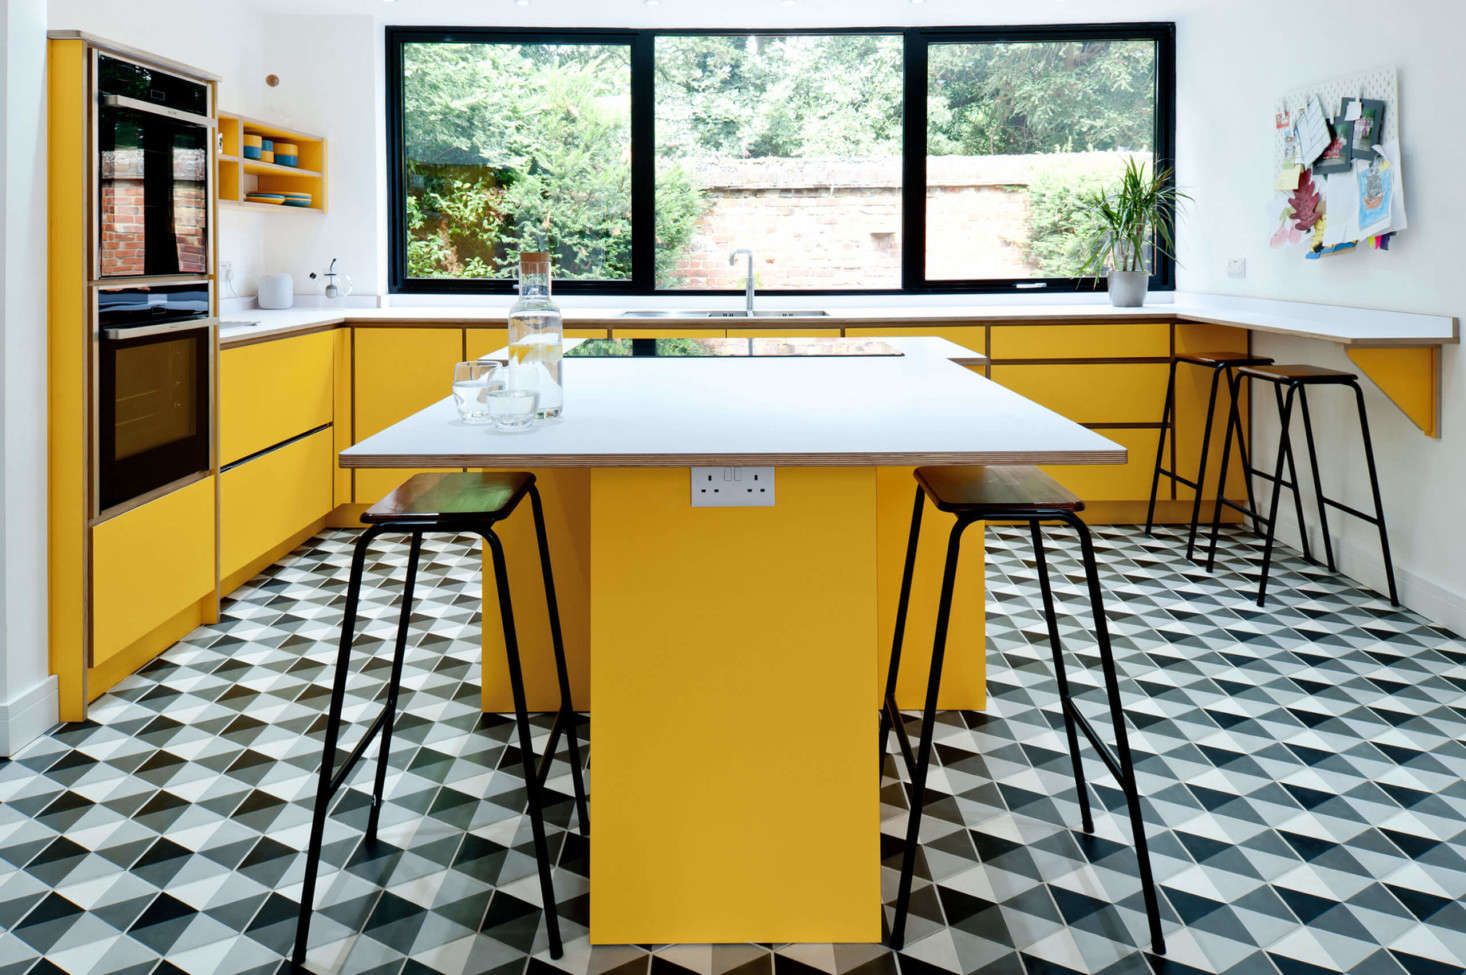 Bright Formica and birch plywood meet geometric tile in a South London design by Koivu, a husband-and-wife-run kitchen company based in Kent, England.